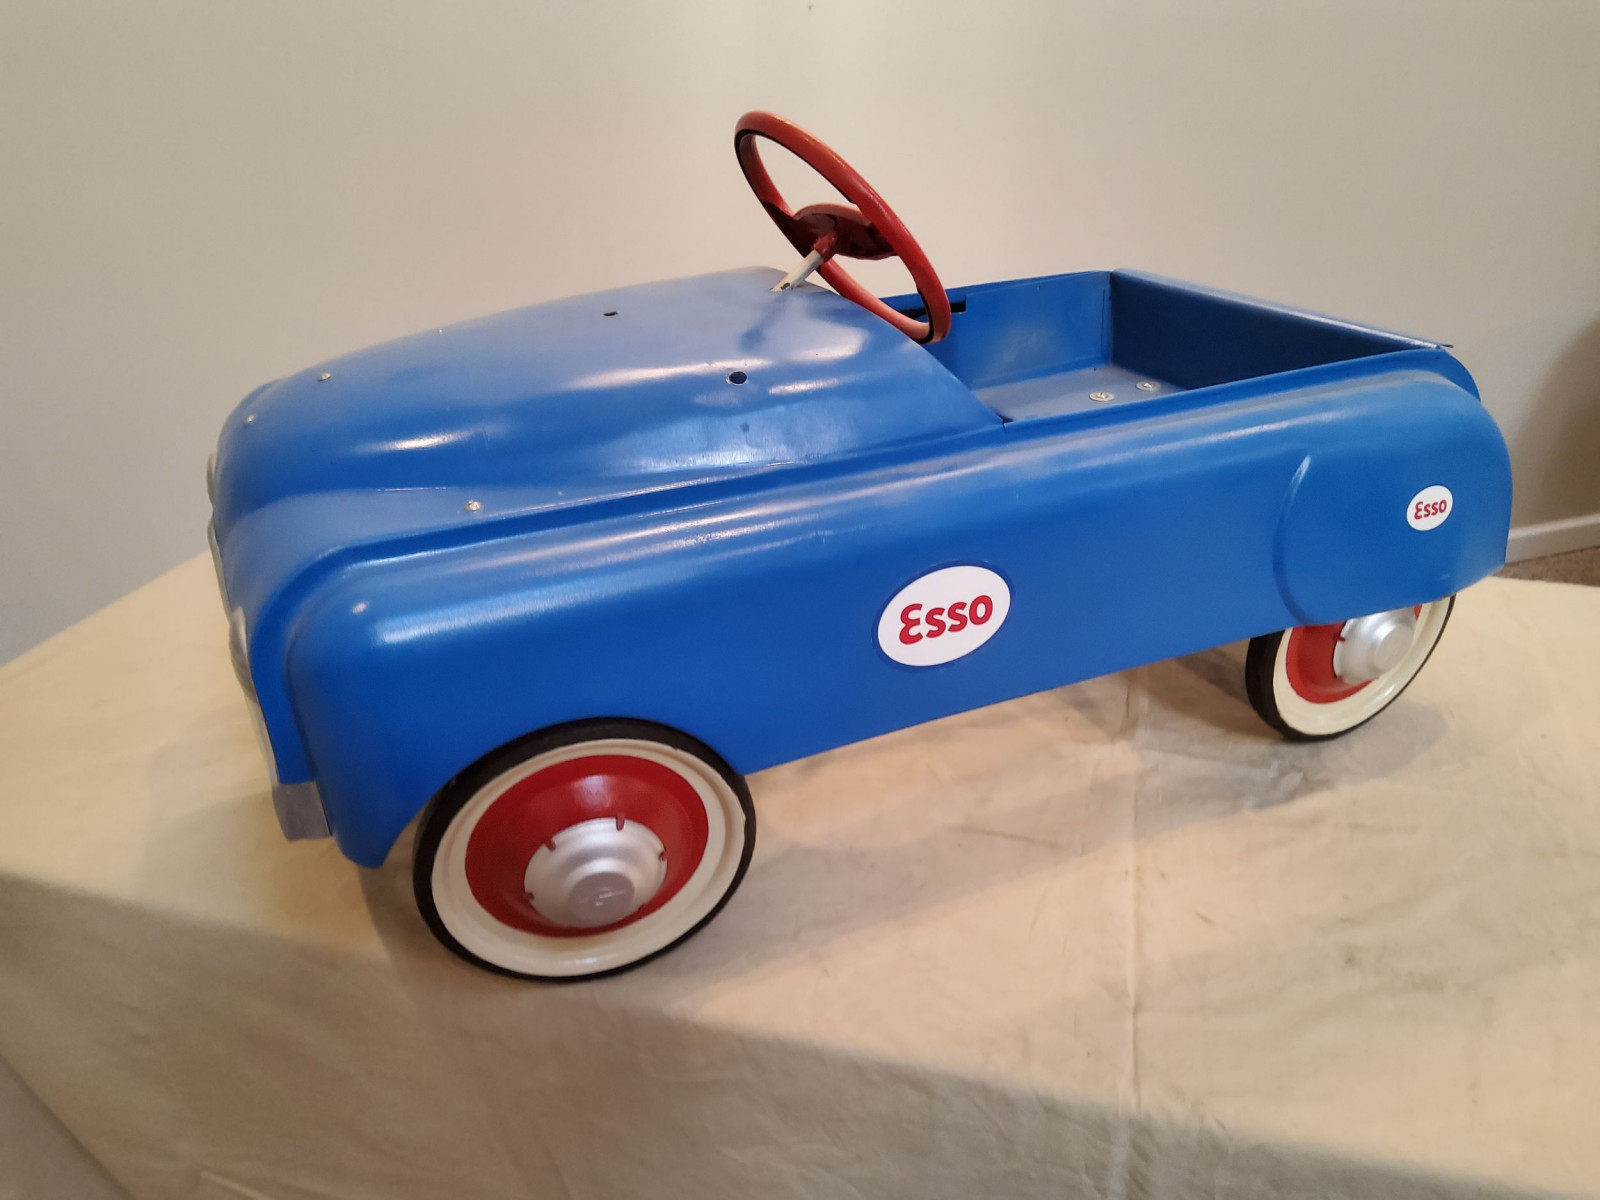 1950 BMC Smooth Side ESSO theme Pedal Car - Image 5